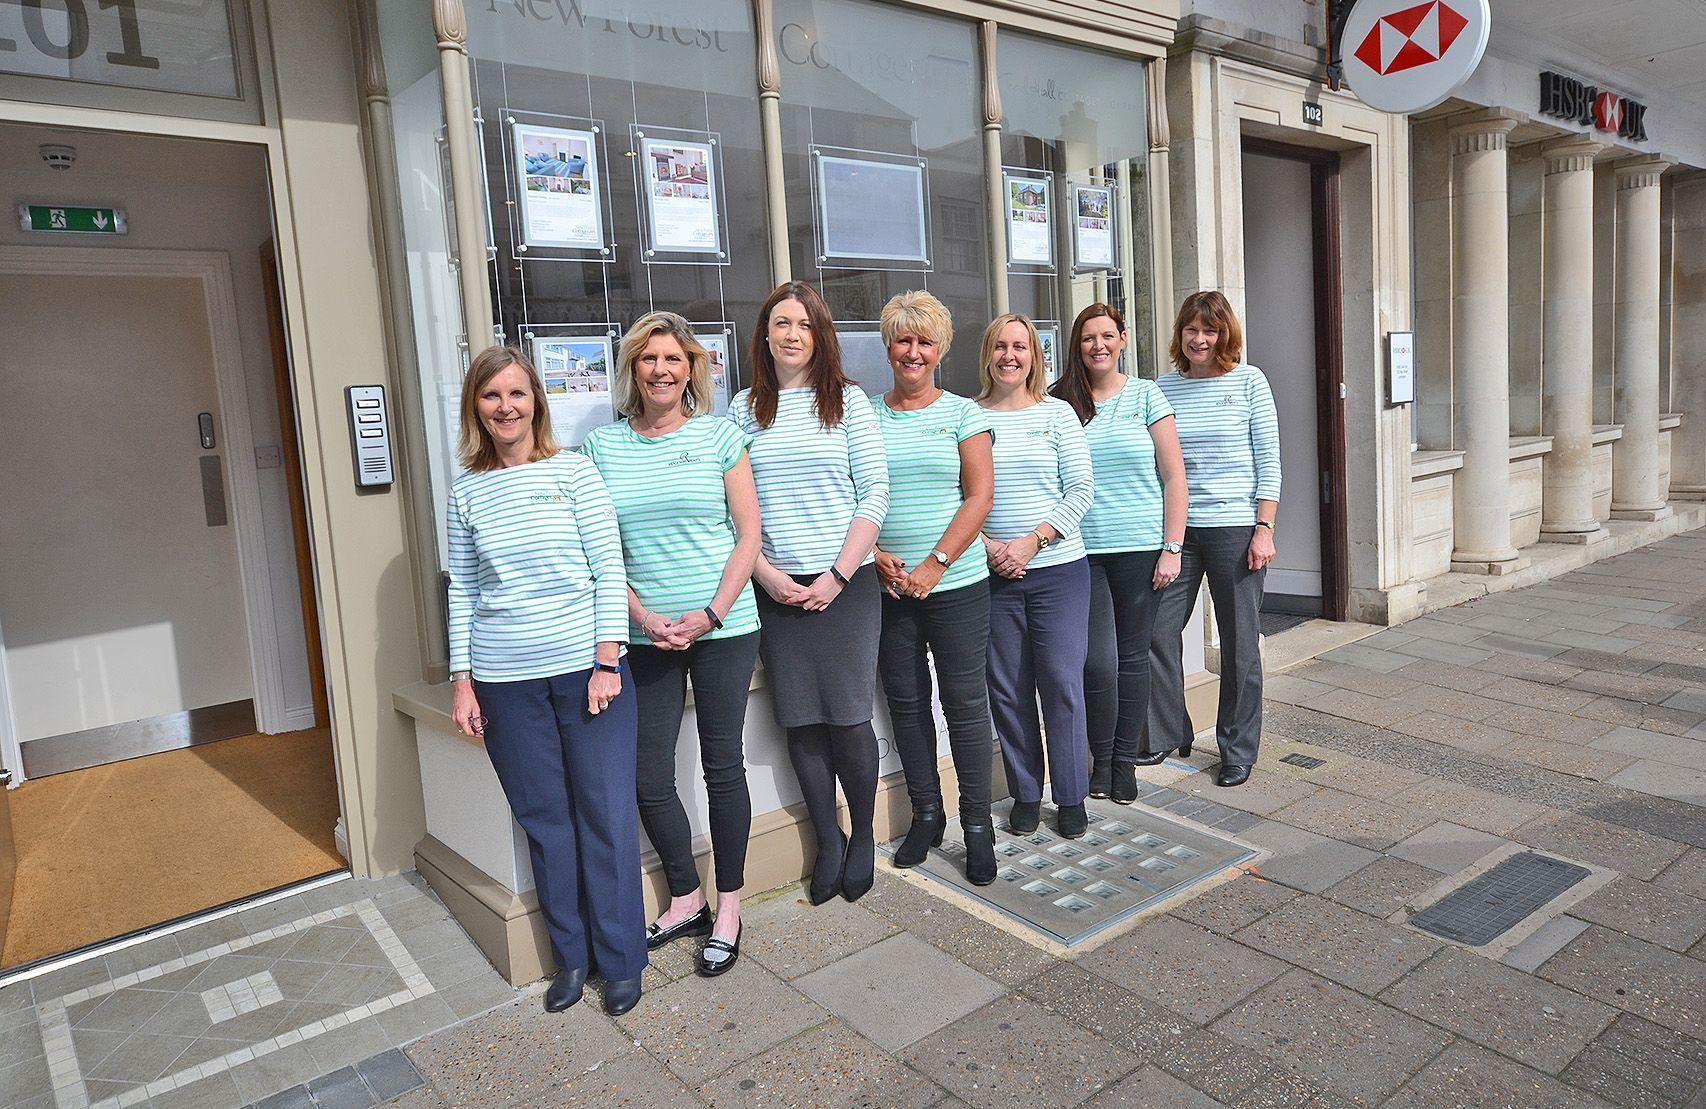 New Forest Cottages and Ridgeway Rents team in Lymington